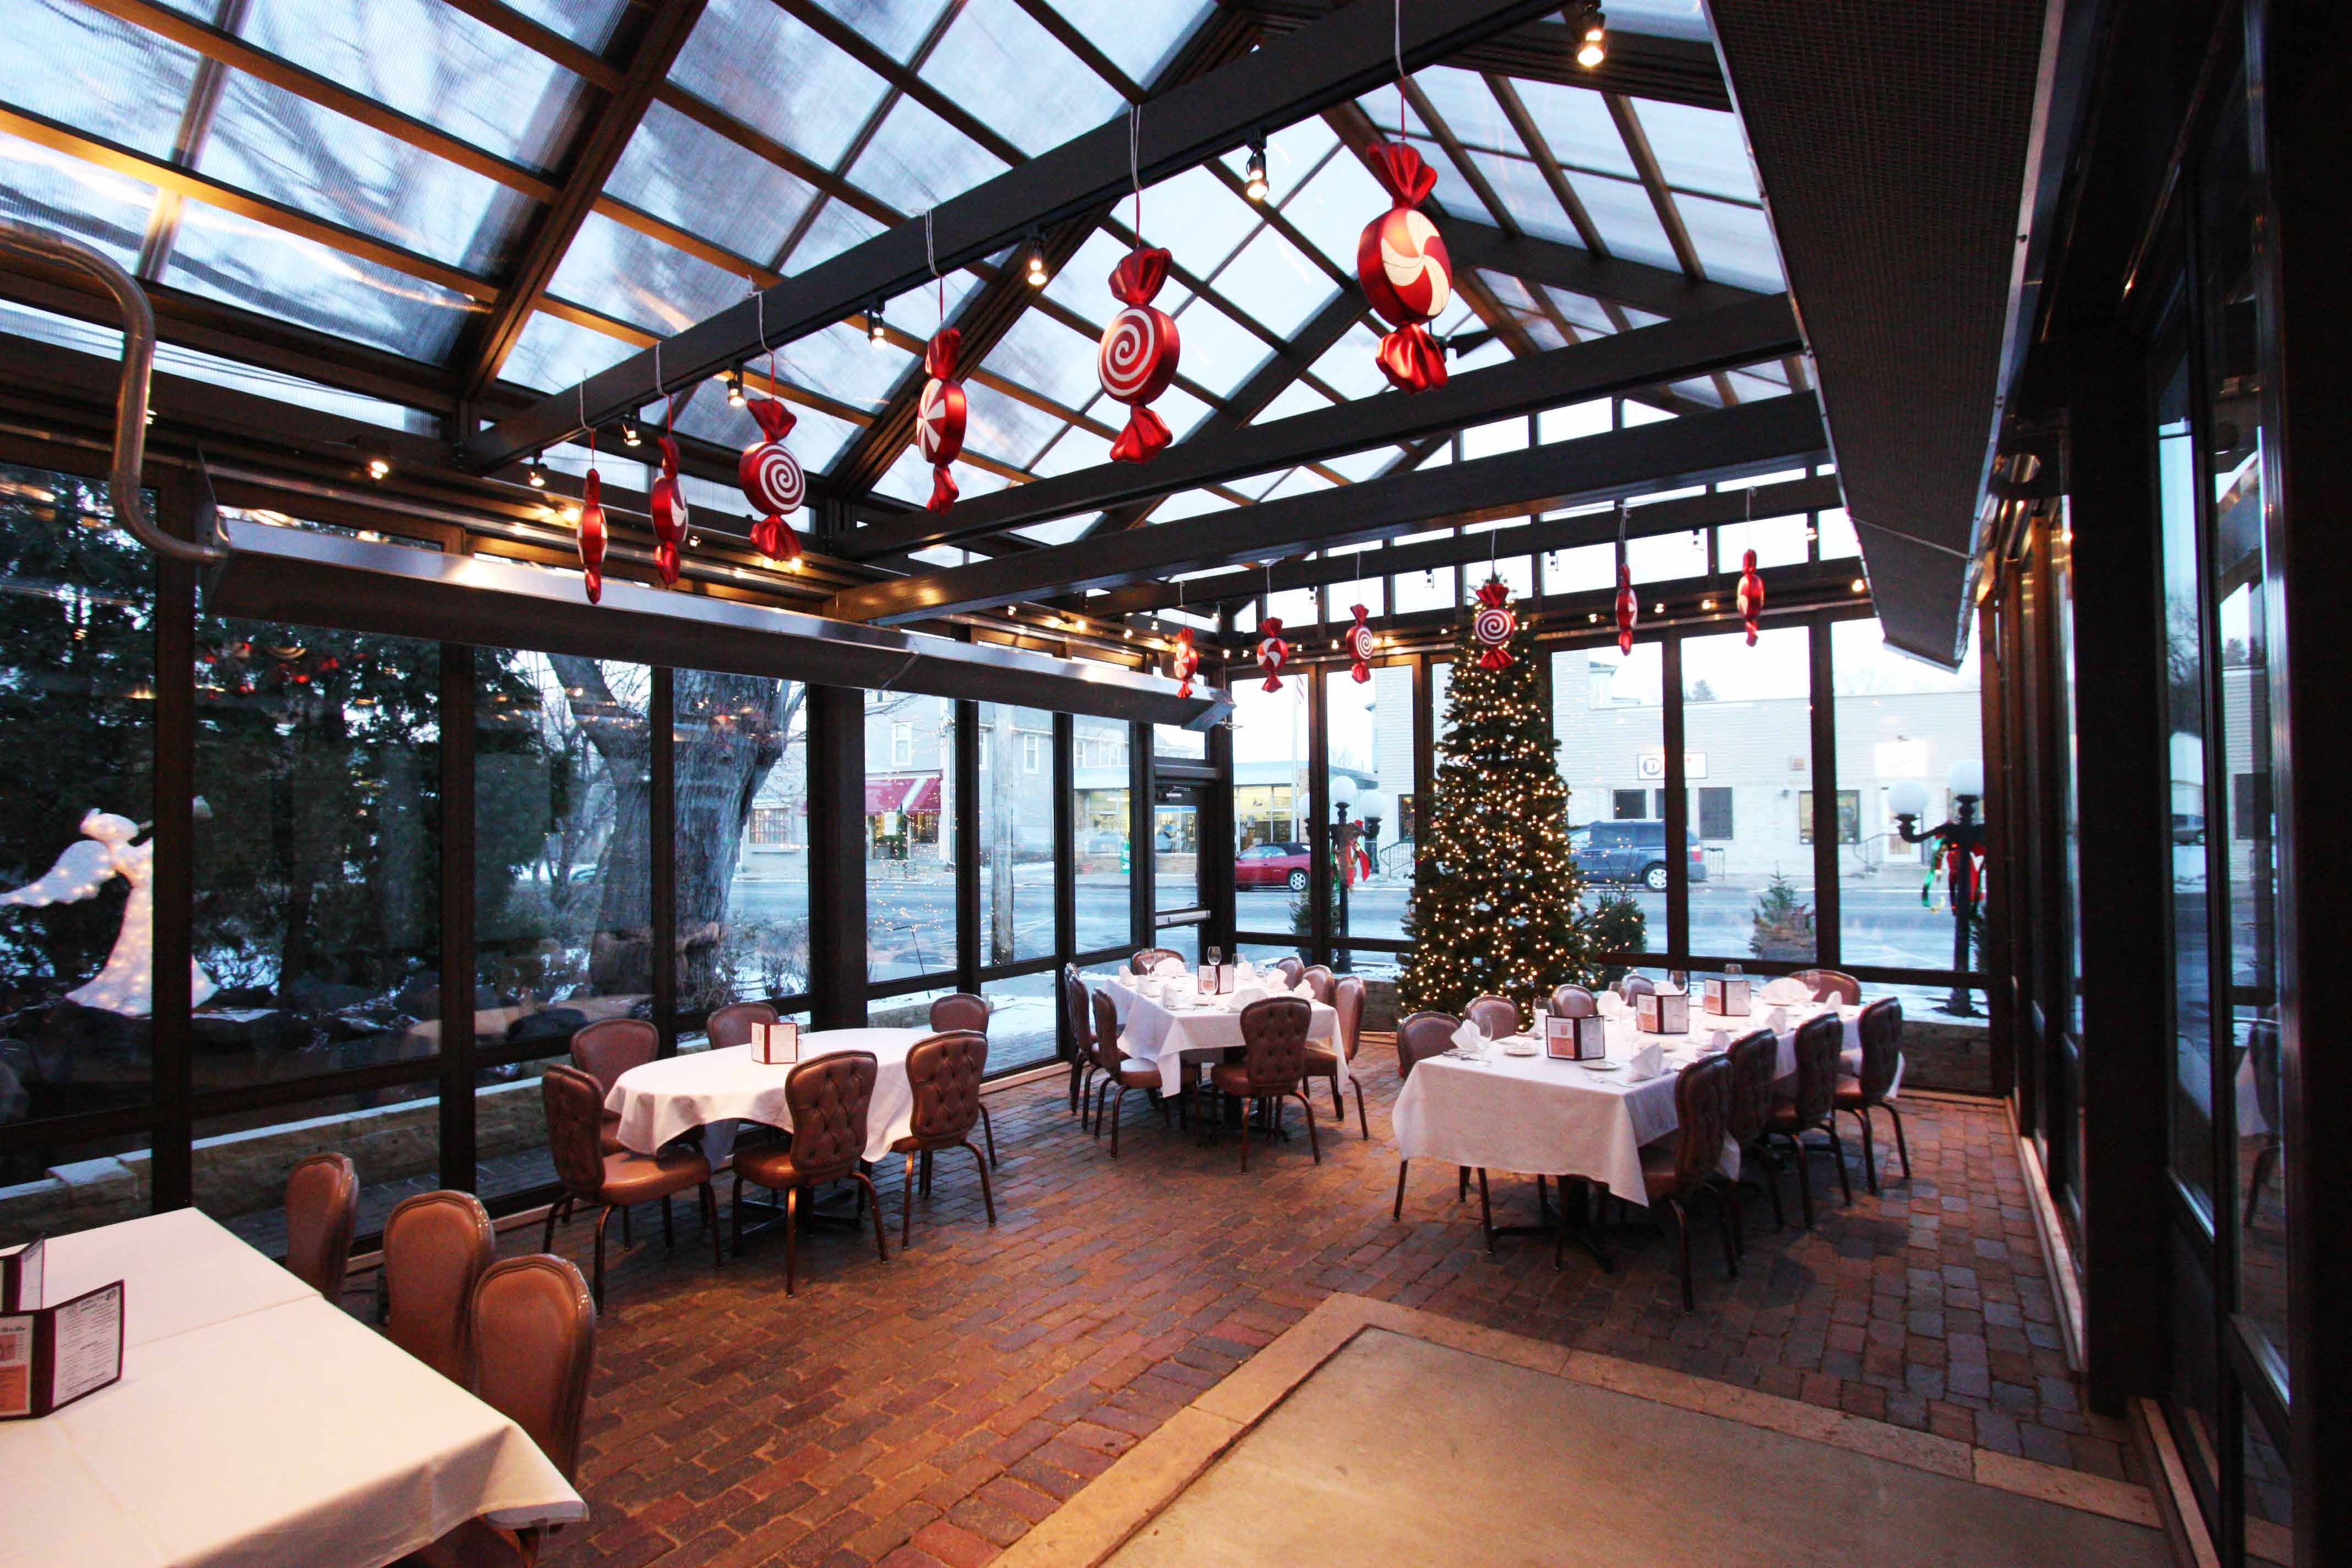 Cabrio Structures - holiday theme outdoor patio with a retractable structure